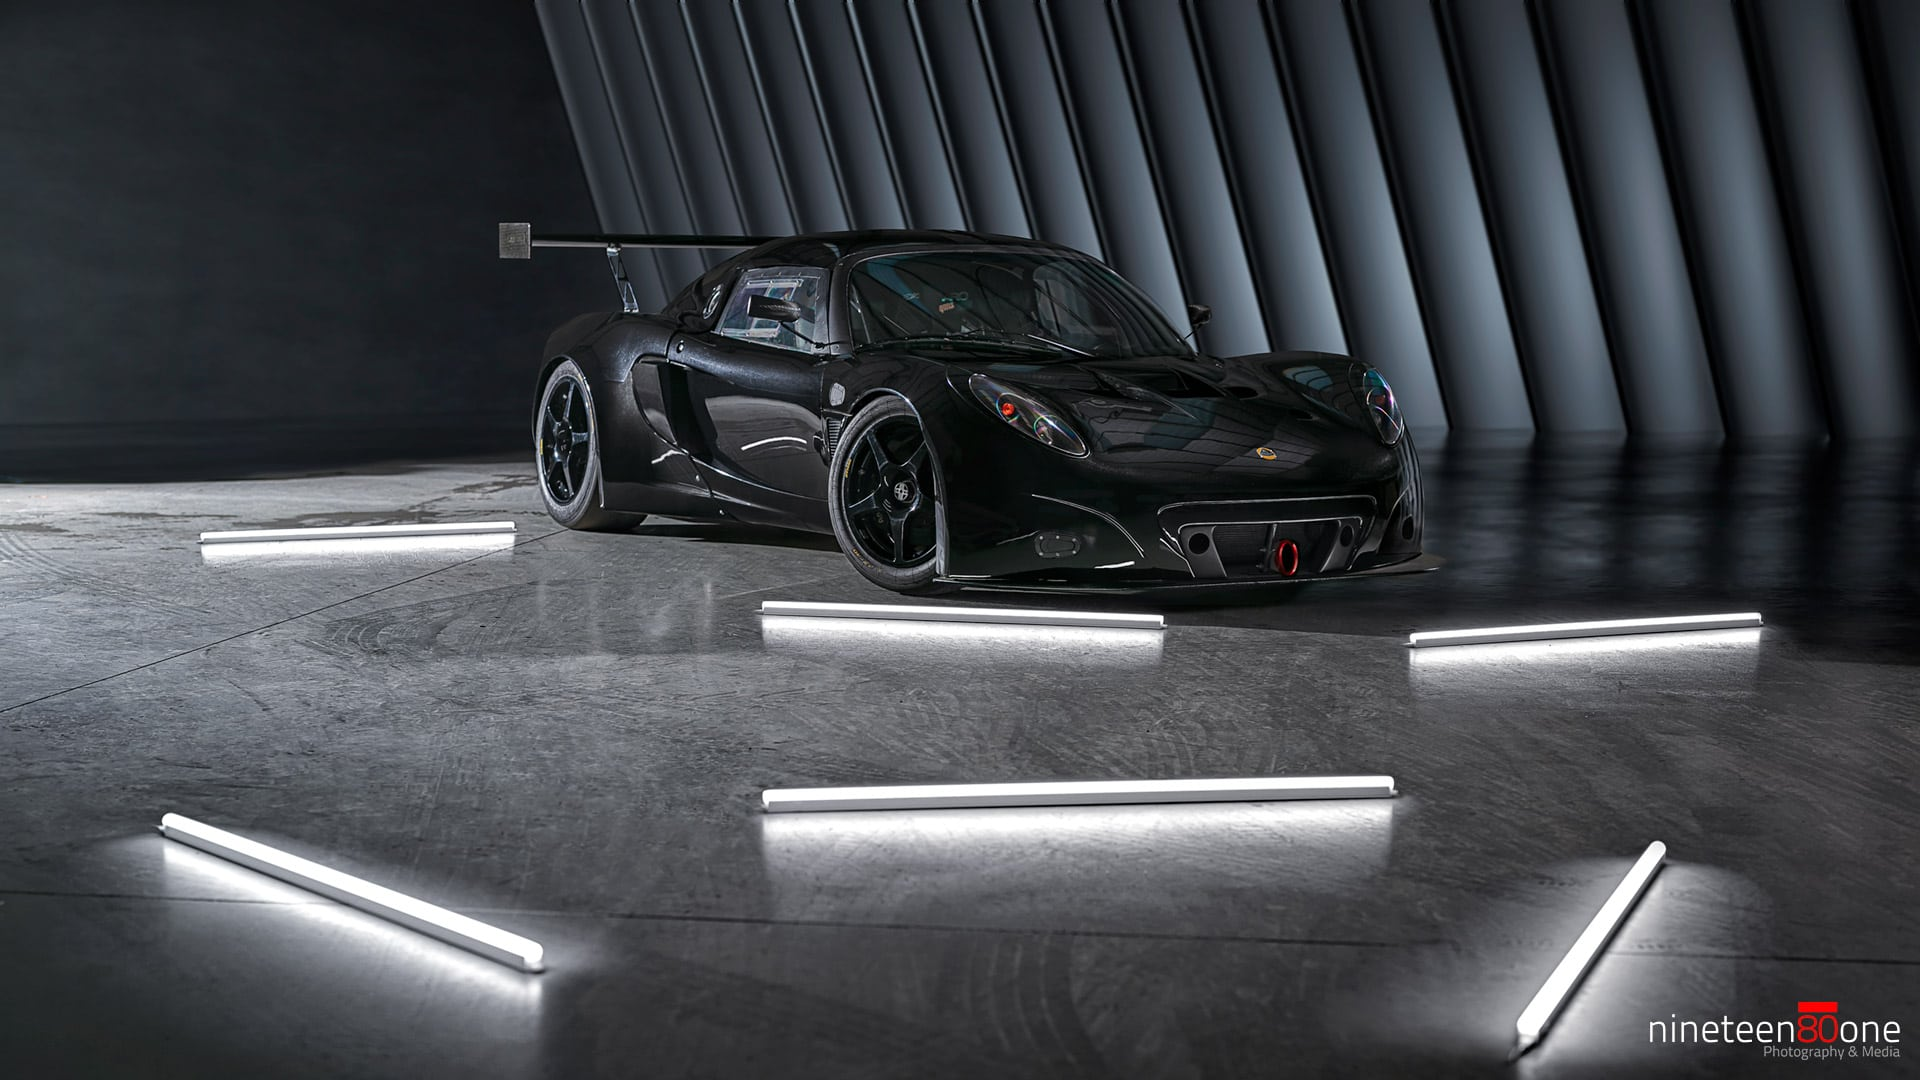 Lotus Exige GT3 Race Car wallpaper